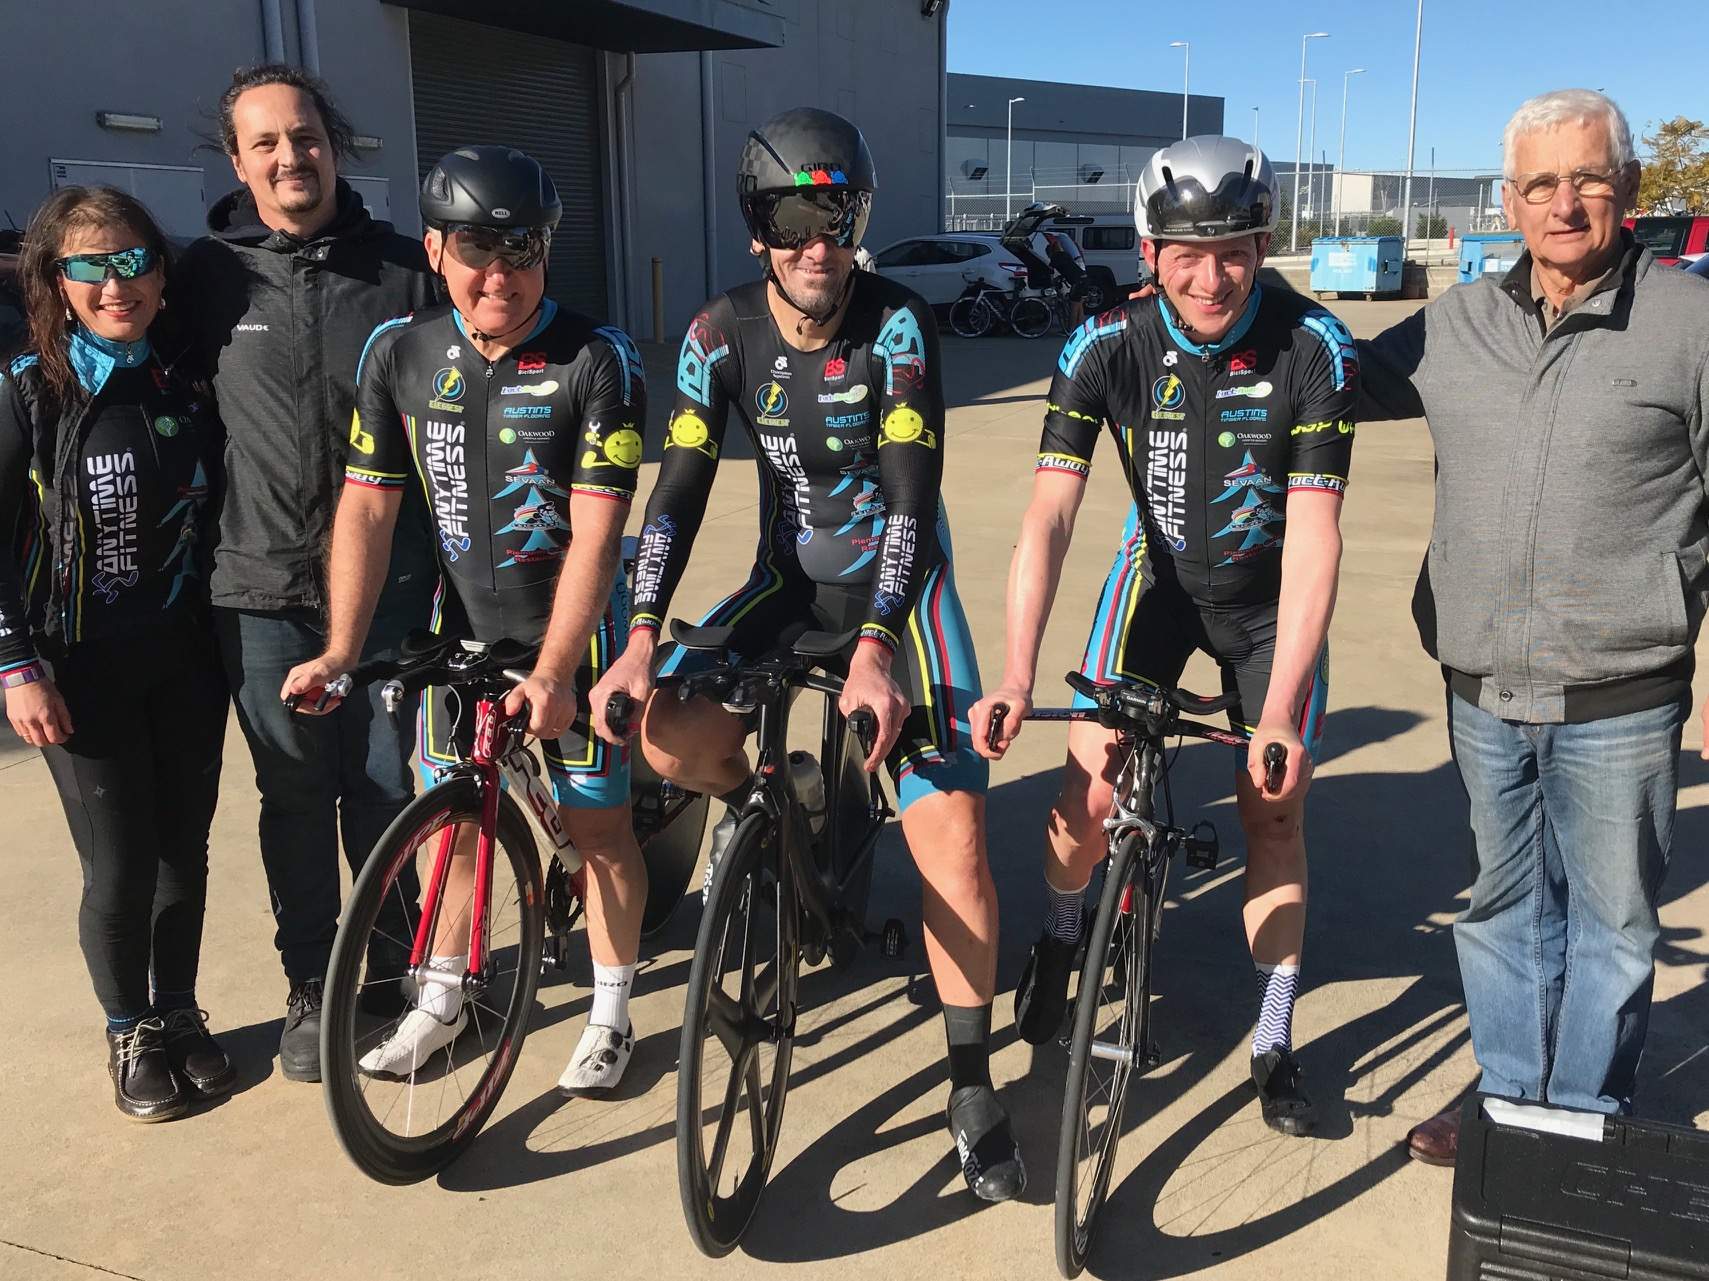 Nowra Team Time Trial Championships @ 21 July - BiciSport Sassafras Challenge Mens team ... L to R  Darren Crouchley (Mechanic), Graham Cockerton, Stewart Campbell, Tom Green & John Crouchley (Manager). Rhett Hall (not in photo). The BiciSport Anytime Fitness team finished 3rd.